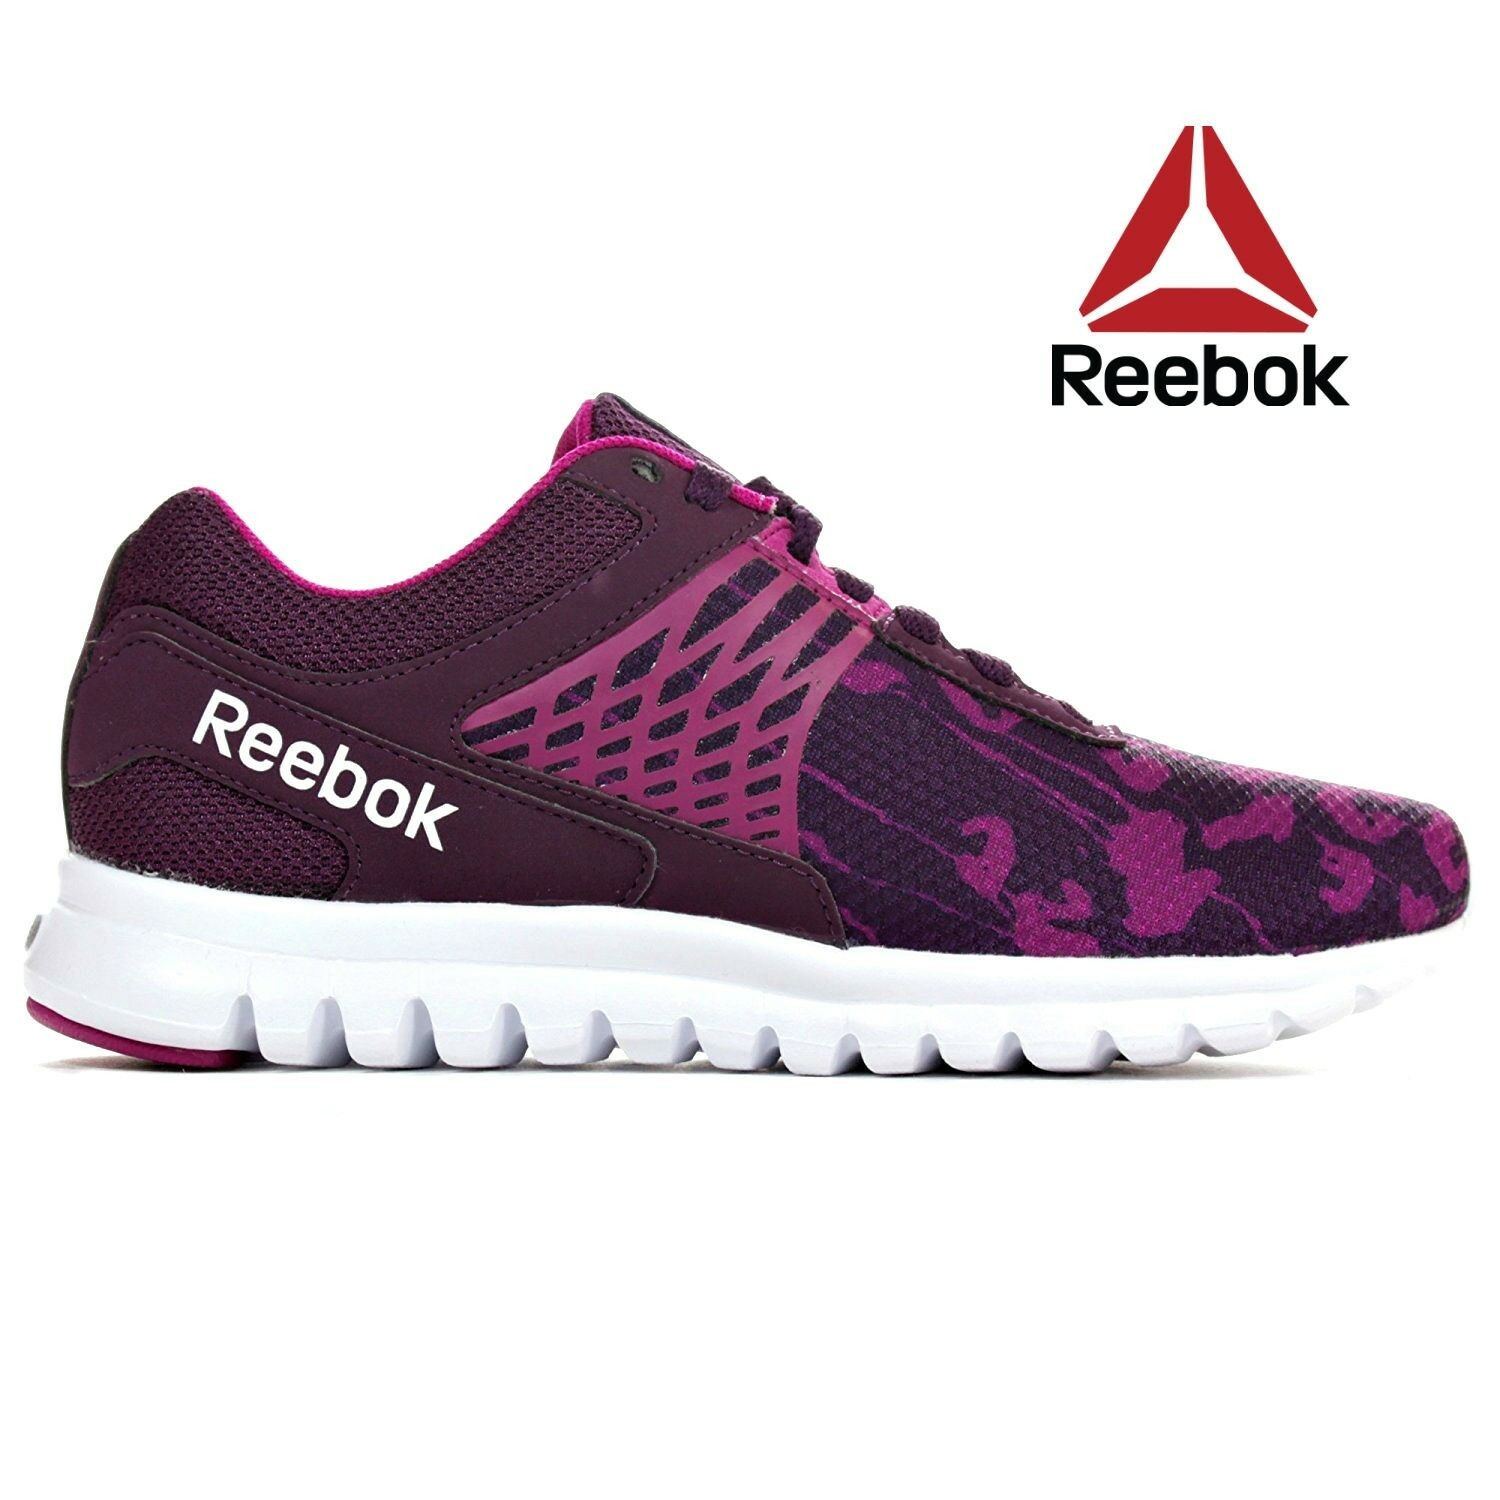 Reebok Sublite Escape 3.0 Donna Running Shoe Trainers Gym Free Tracked Postage